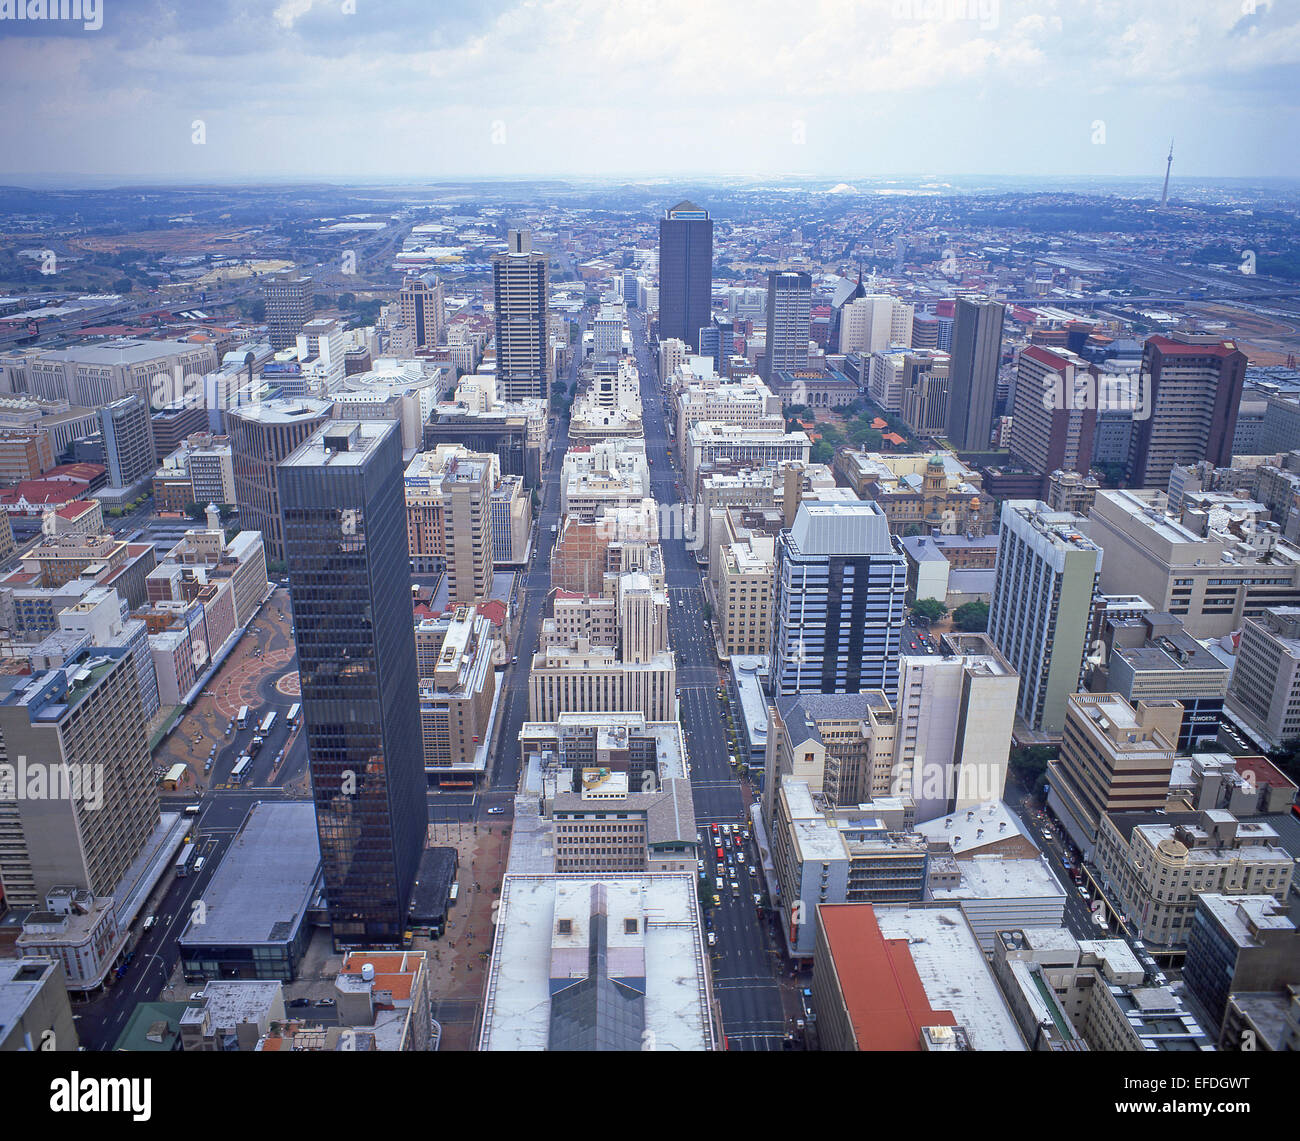 View of downtown CBD, Johannesburg, Gauteng Province, Republic of South Africa - Stock Image